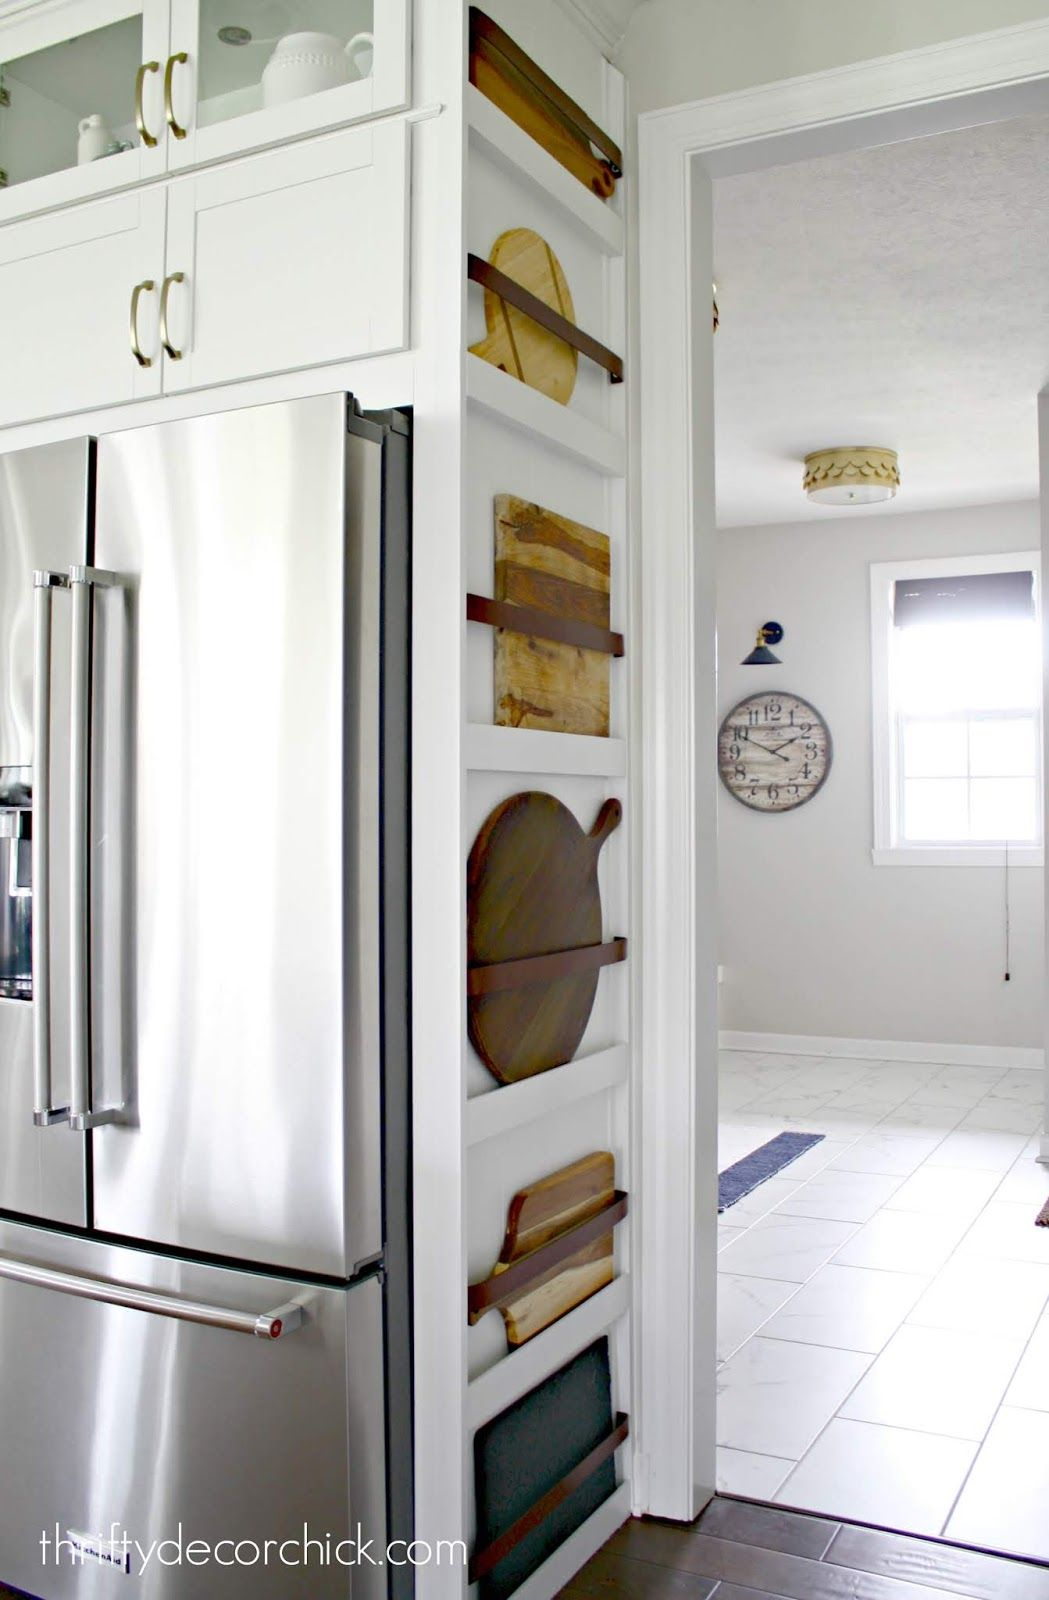 Adding form AND function to the side of a refrigerator